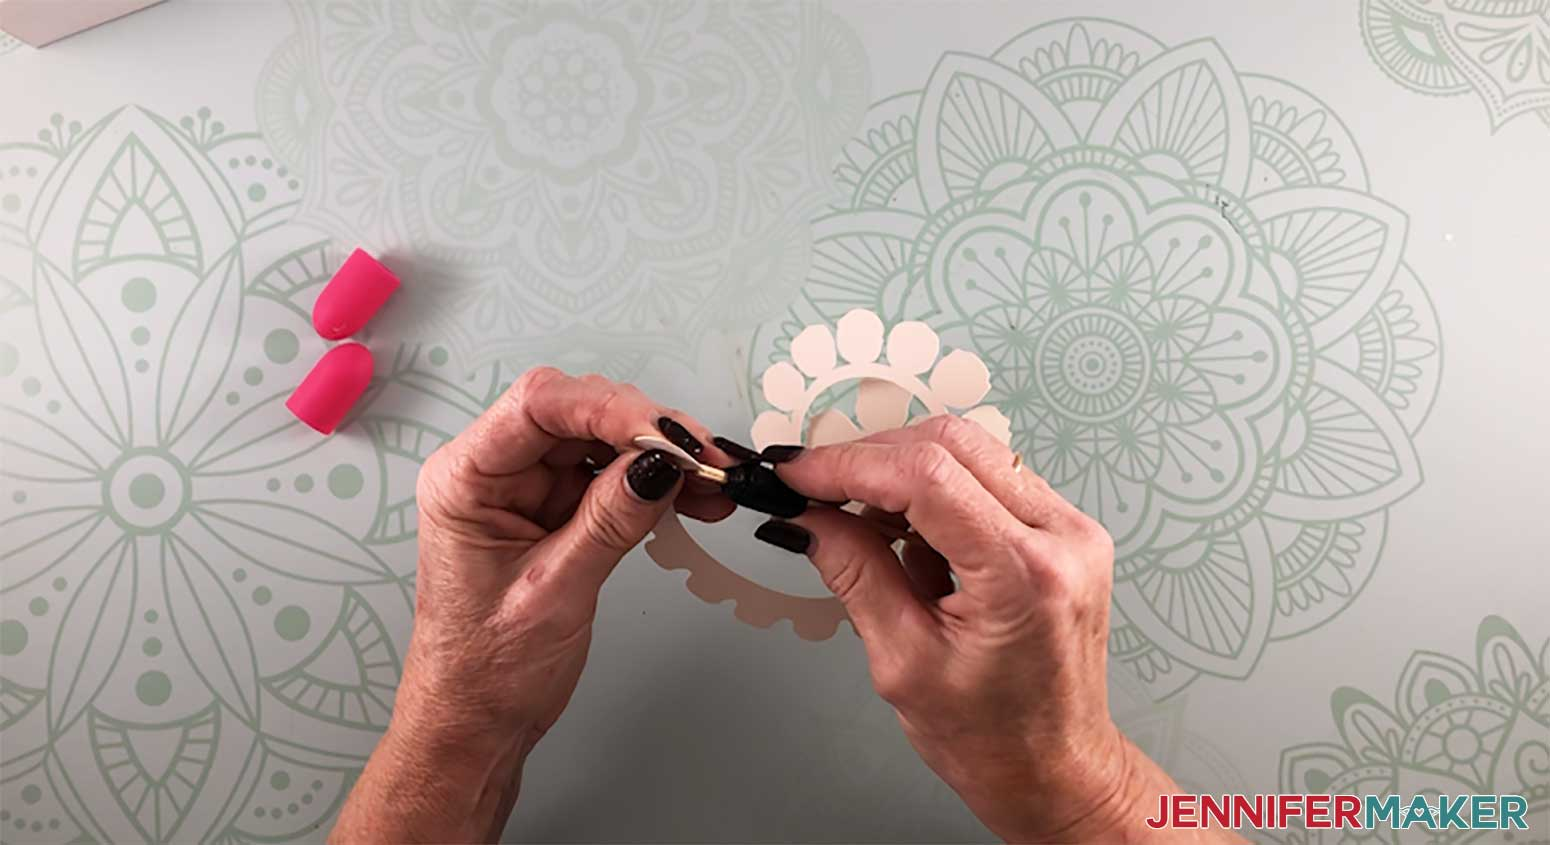 Rolling a paper rose with a DIY quilling tool to make a paper flower shadow box